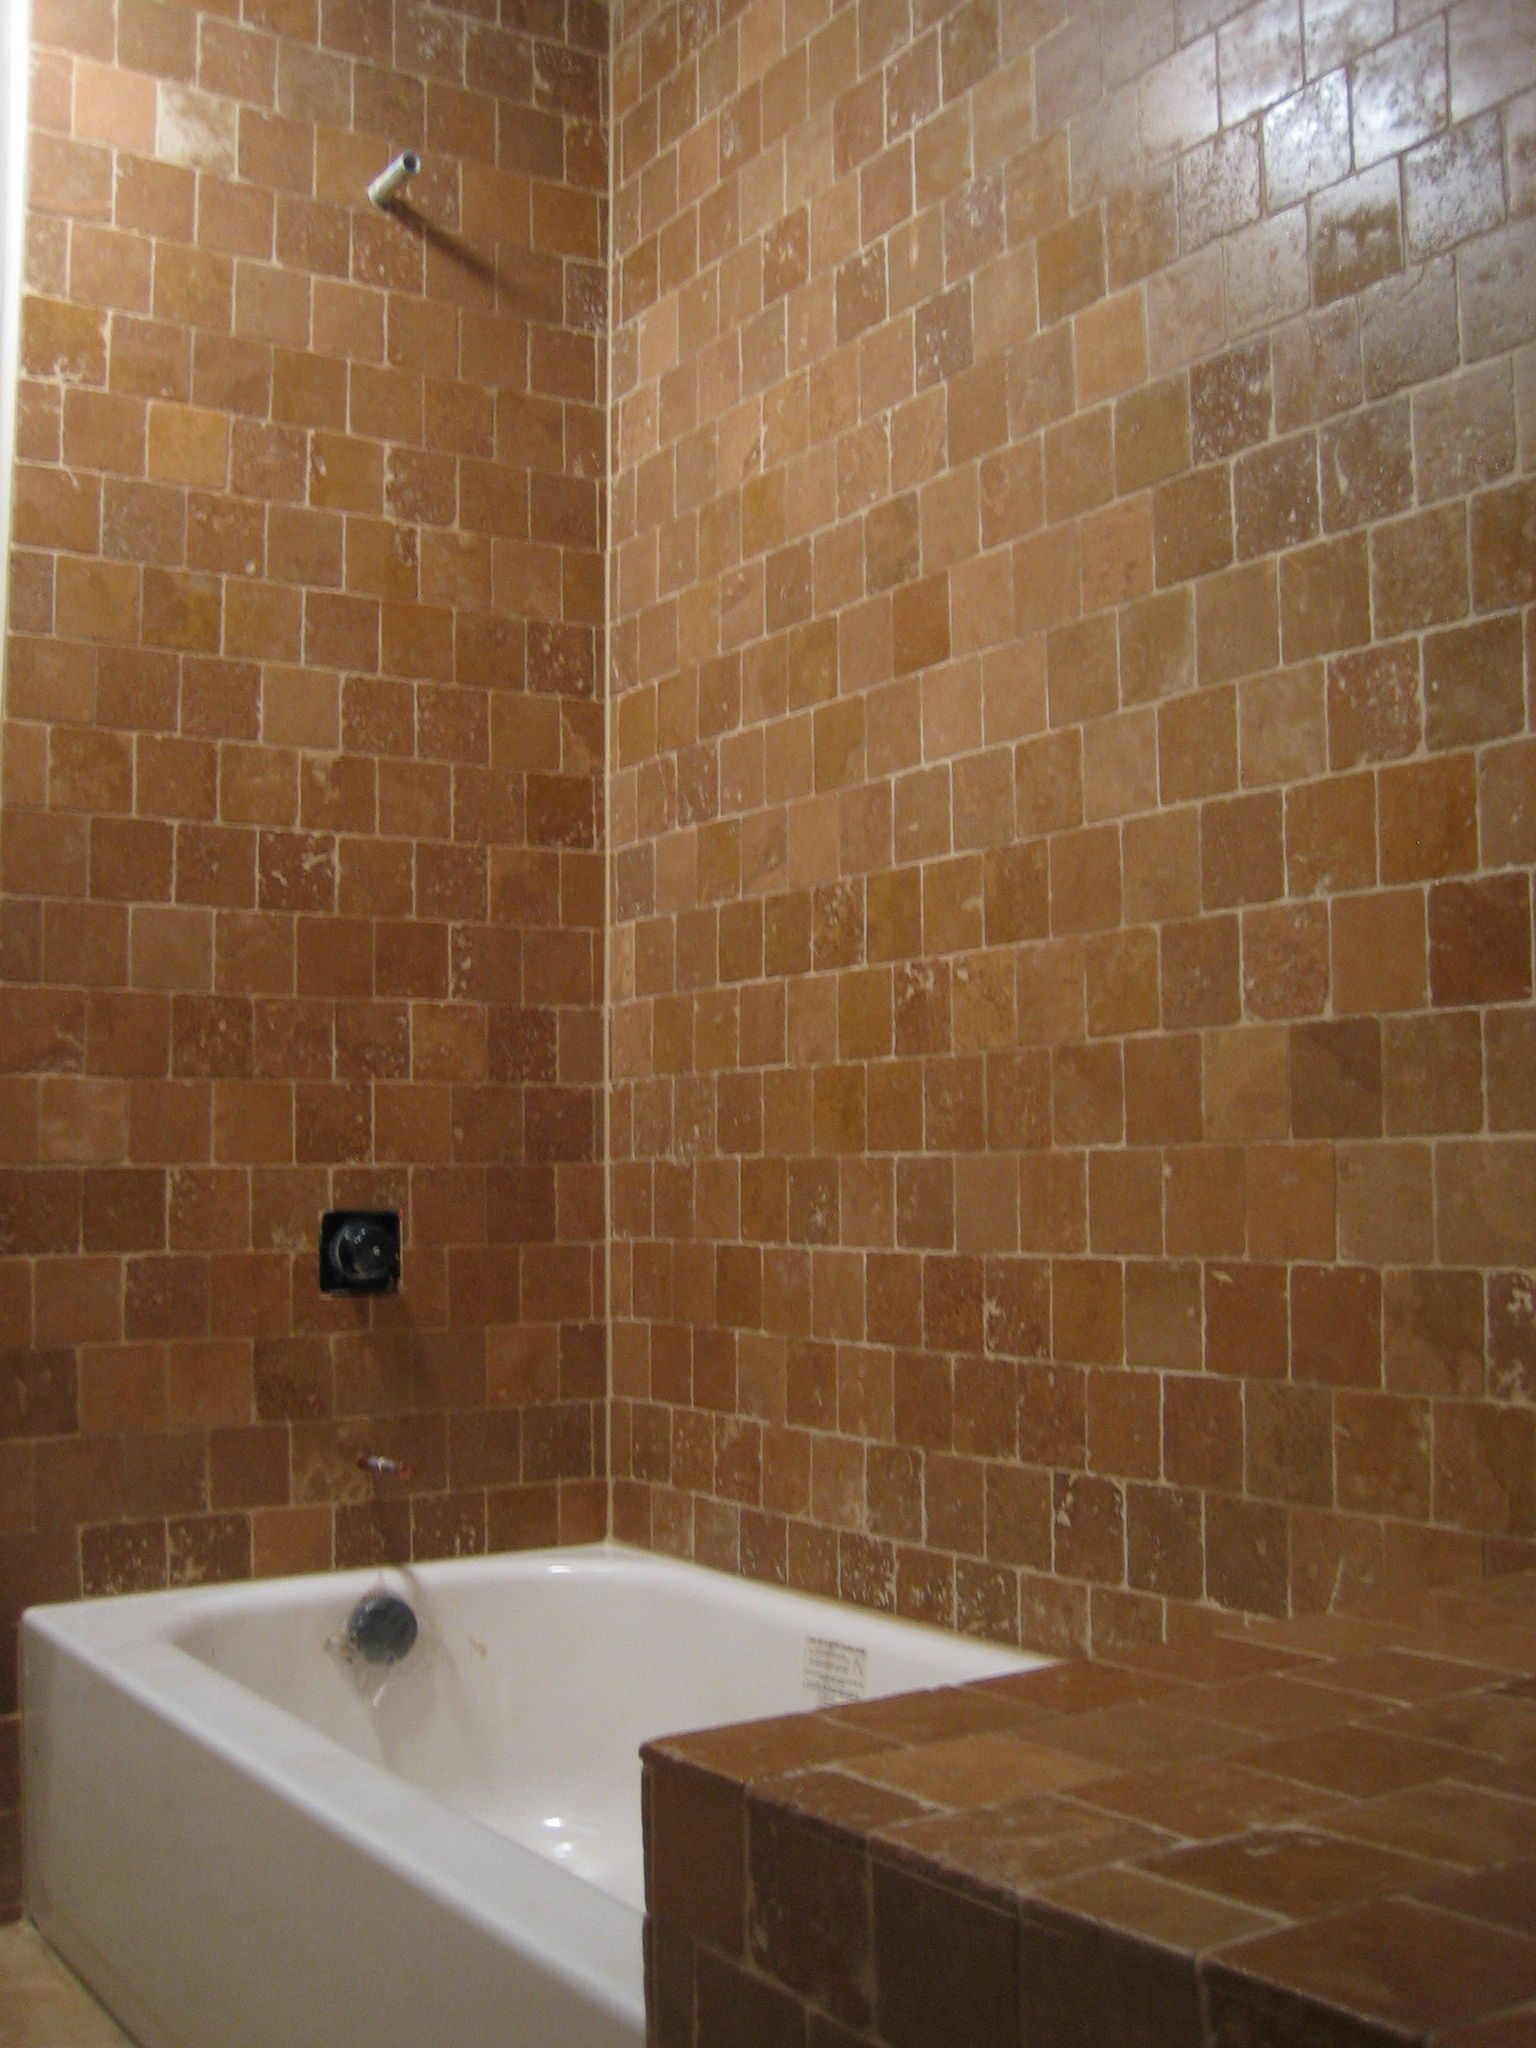 Tiled tub surround pictures bathtub surrounds ma bathtub tile surrounds bathrooms - Installing tile around bathtub ...